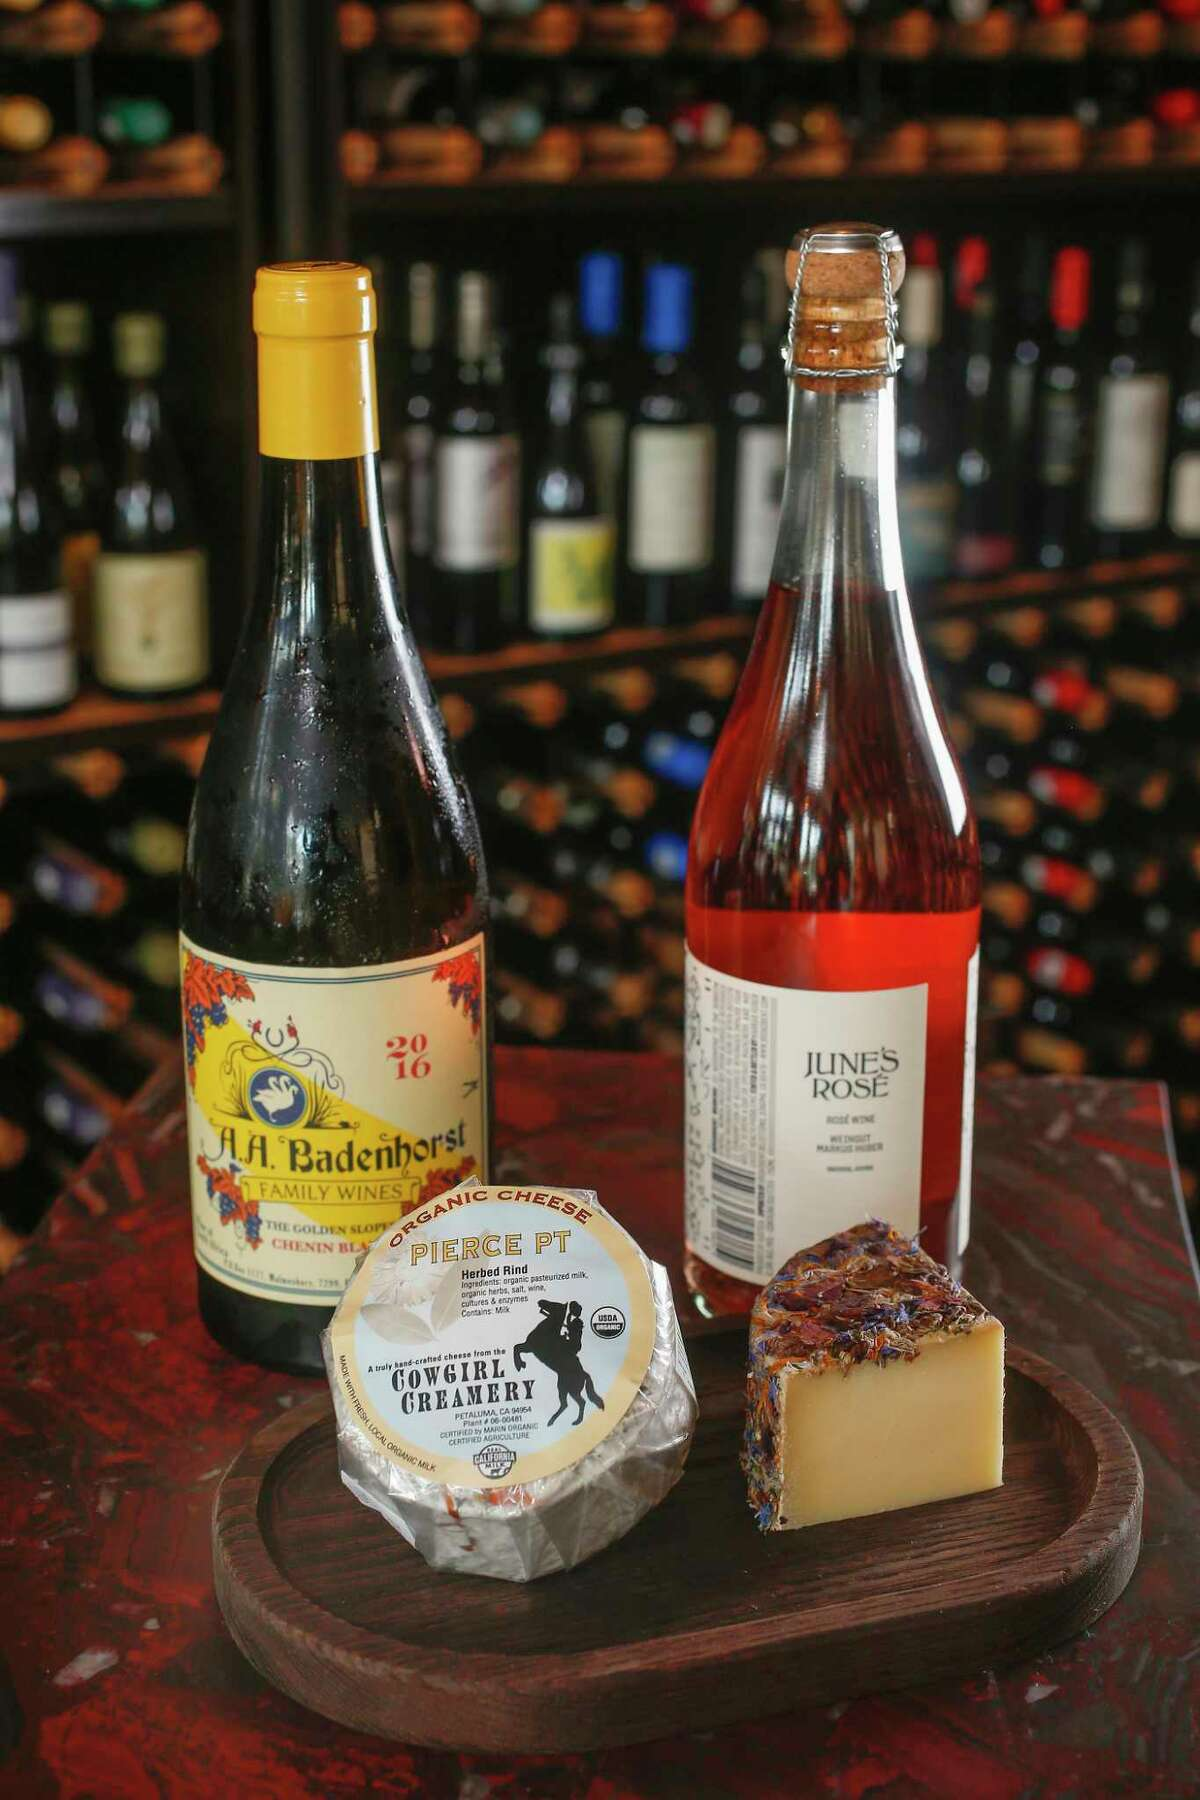 """Rodil's pairings: 2016 A. A. Badenhorst """"Secateurs"""" Chenin Blanc with Cowgirl Creamery's Pierce Point and June's Rosé with Tiny Blossom"""